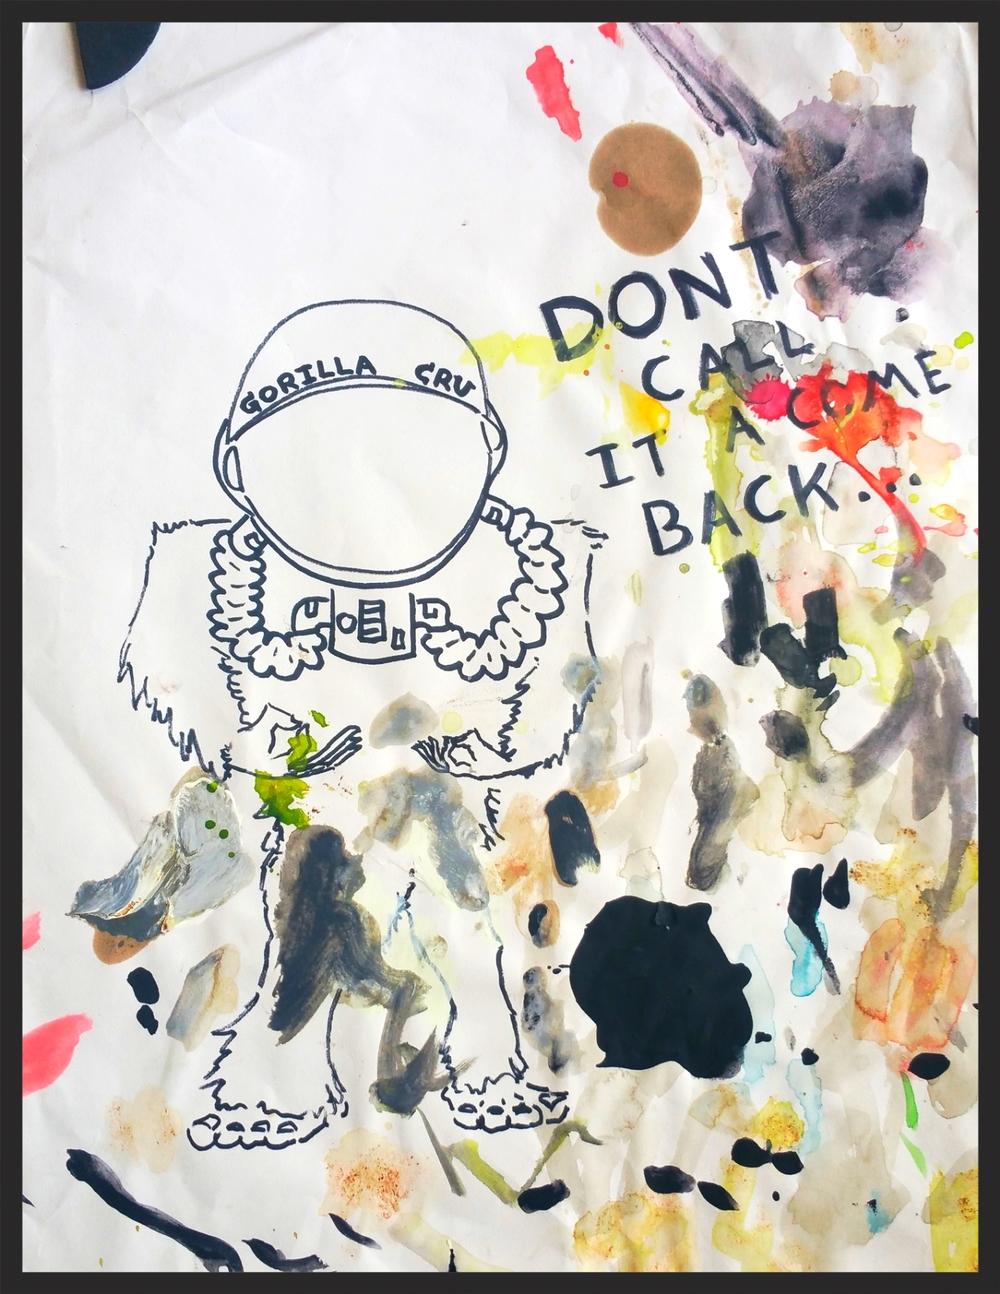 Dont Call it a Come Back - 2010